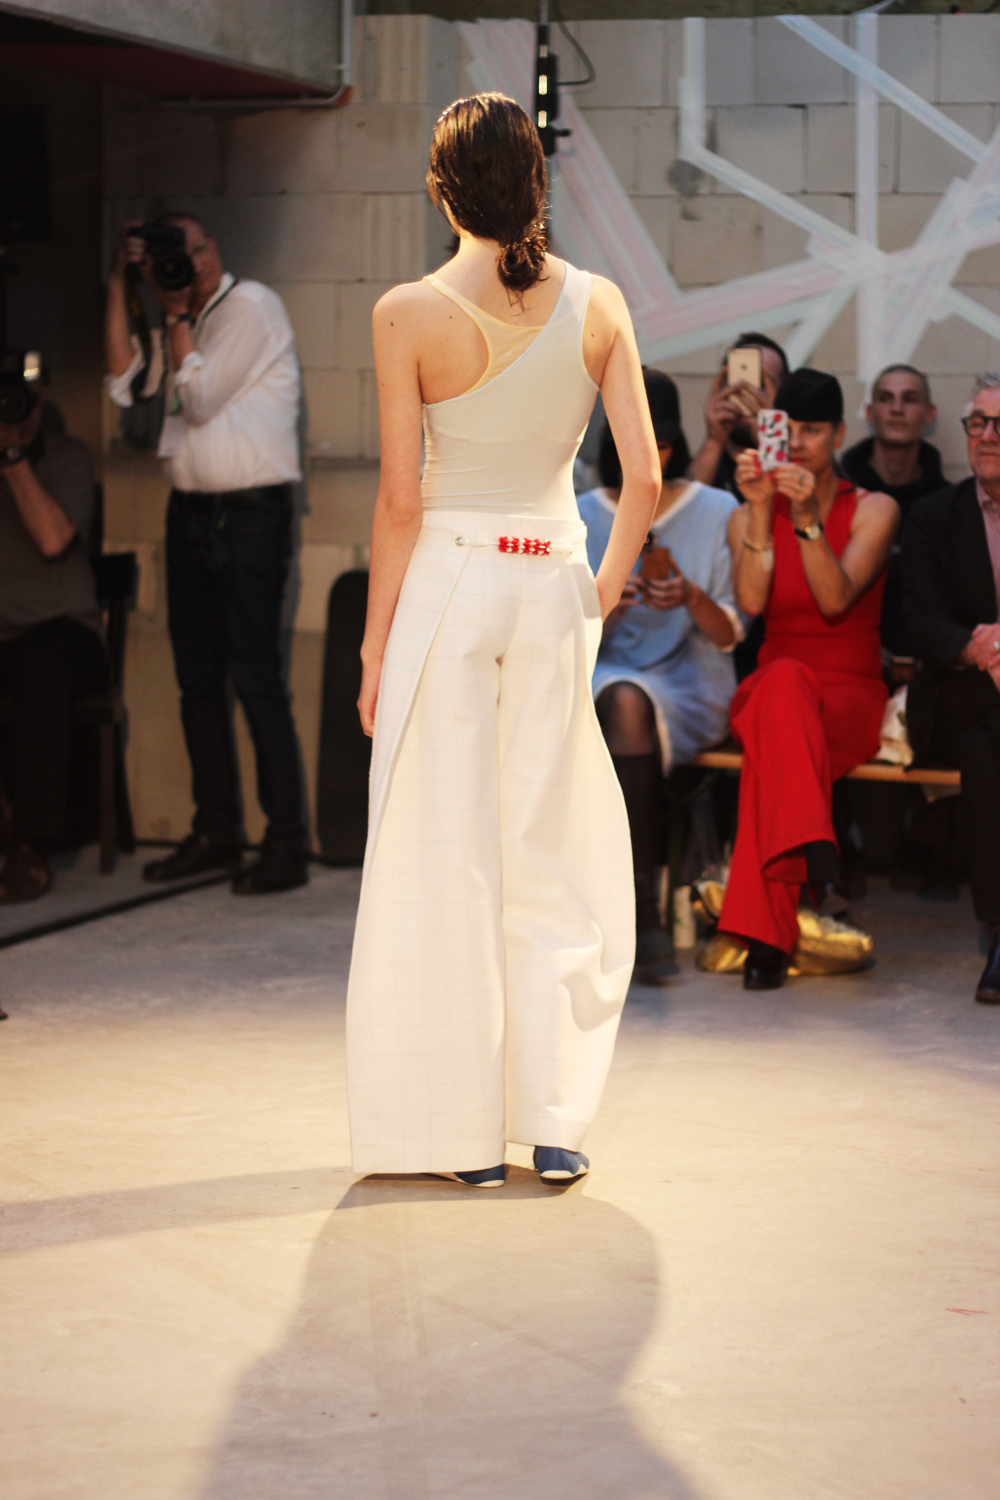 fatimayarie-berlinfashionweek-samplecm-runway-white-marlenepants-img_4040